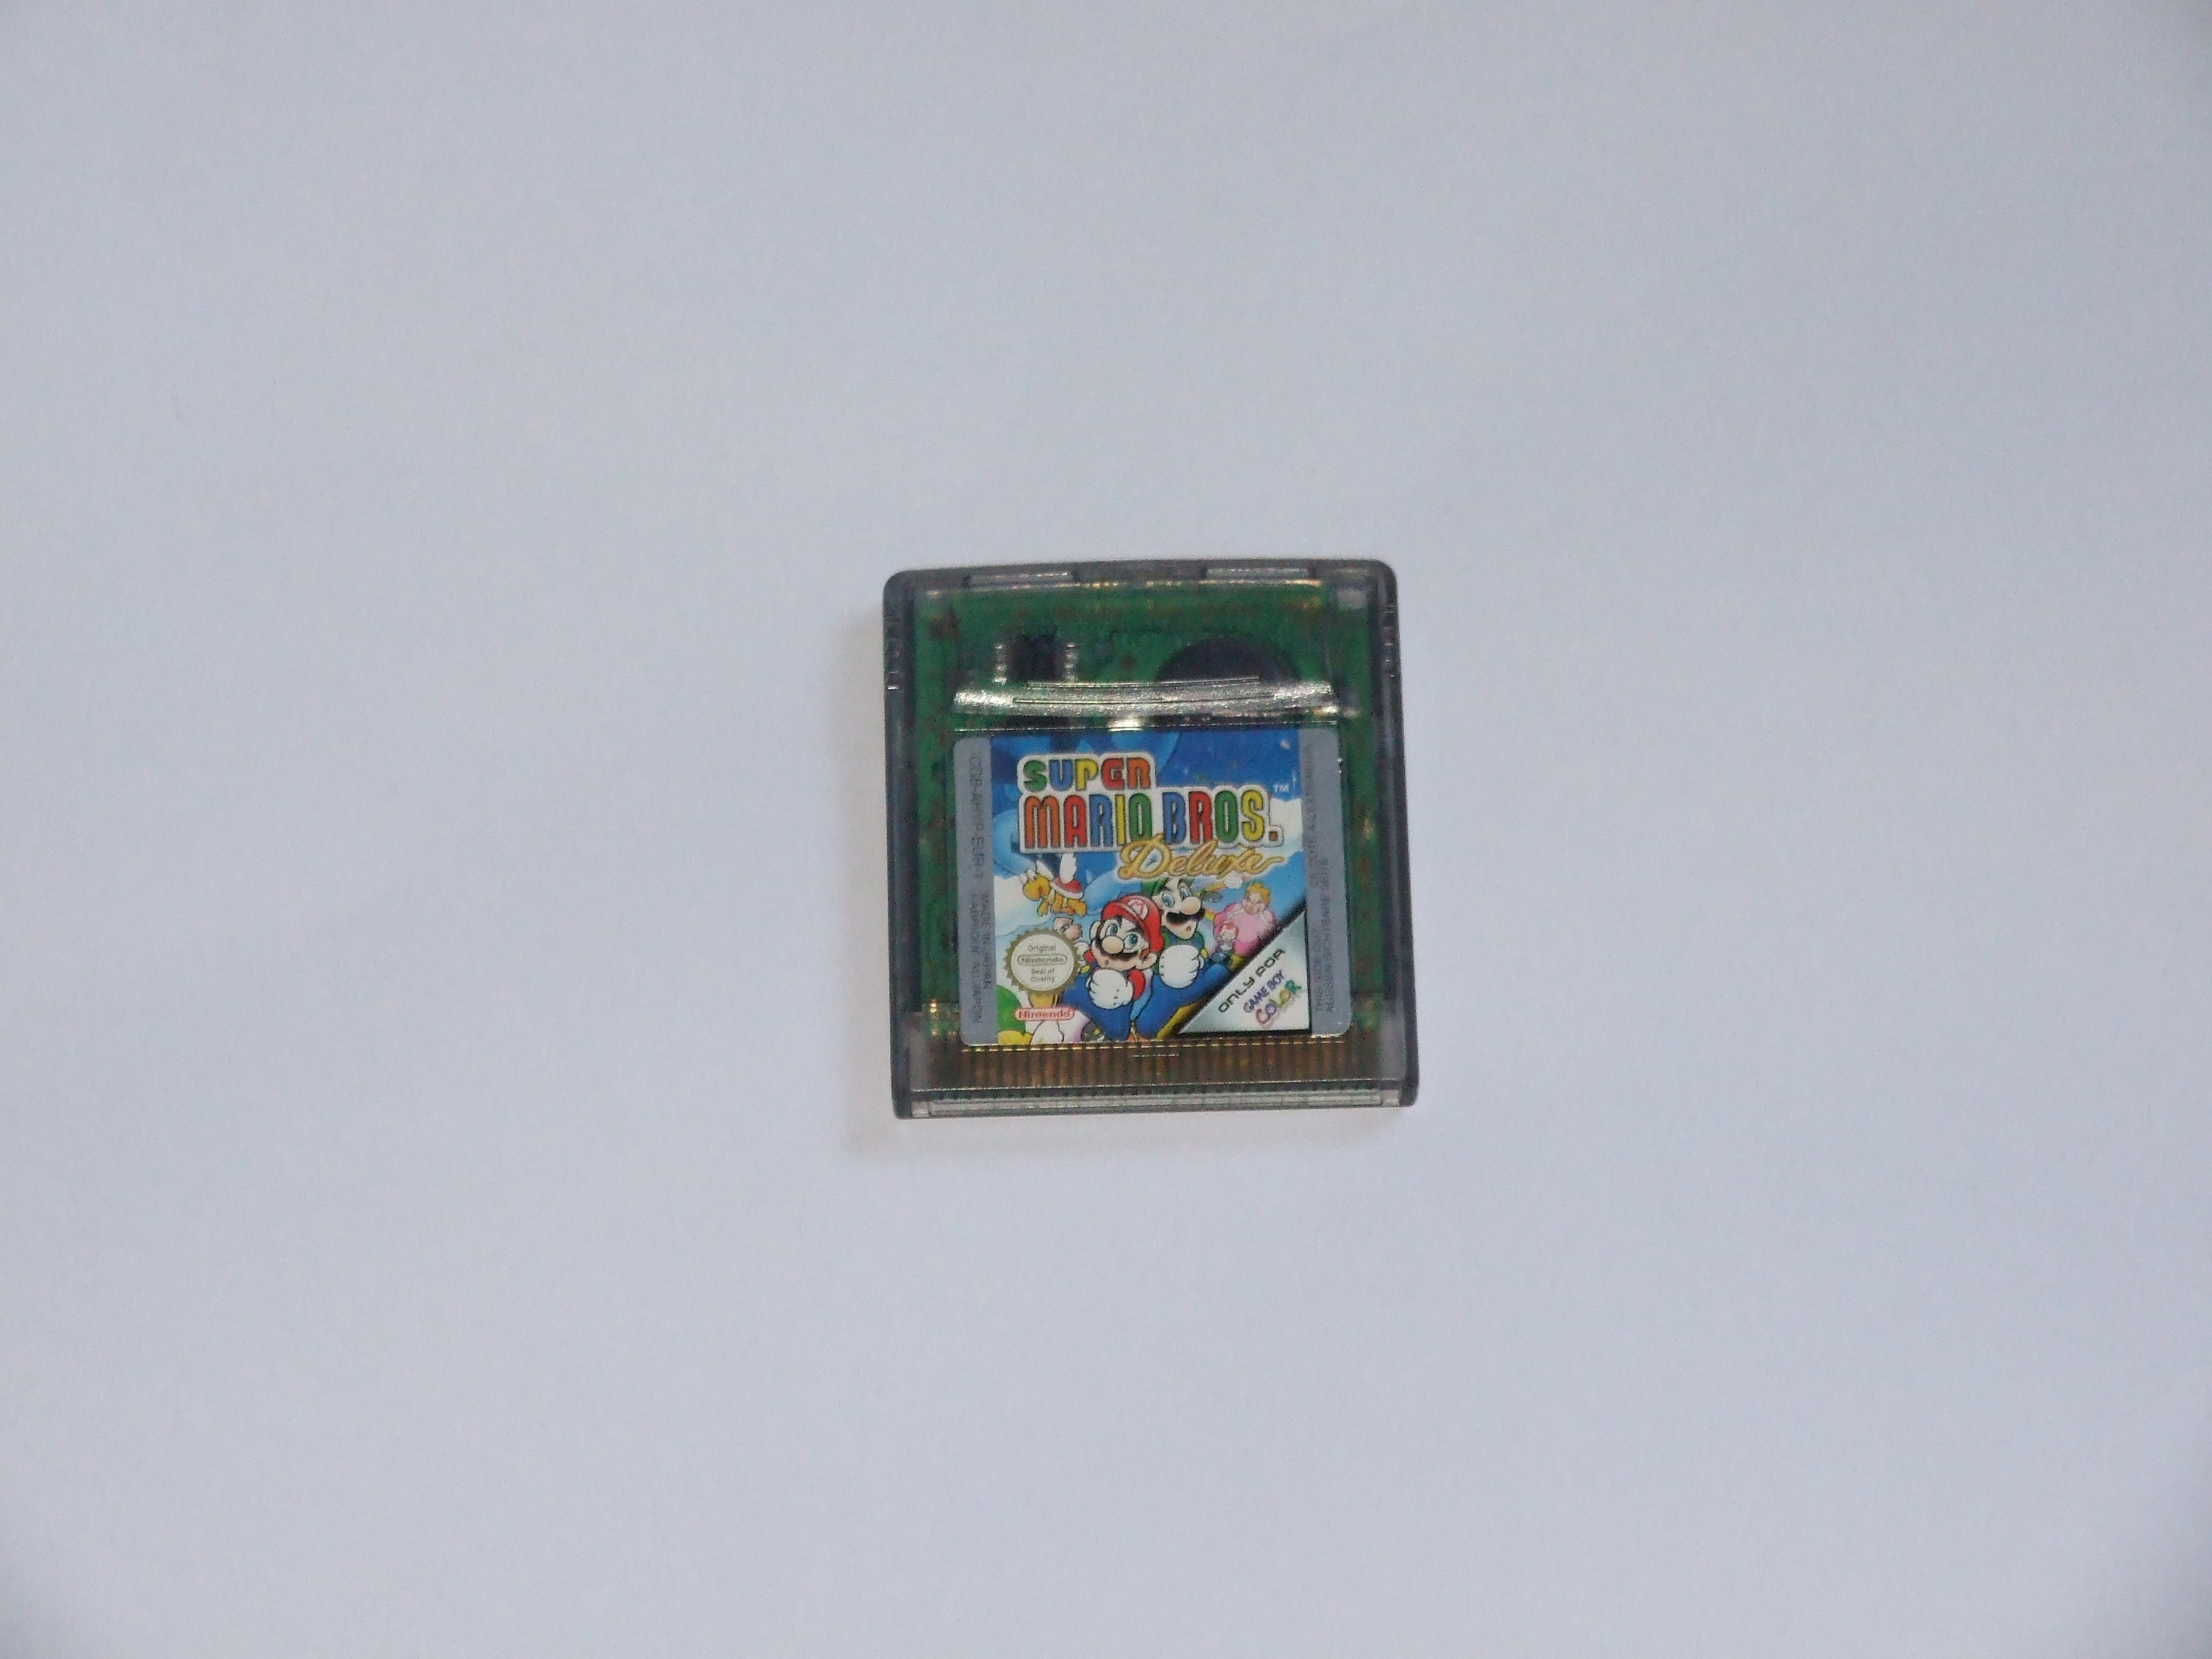 Super Mario Bros. Deluxe (Cartridge)